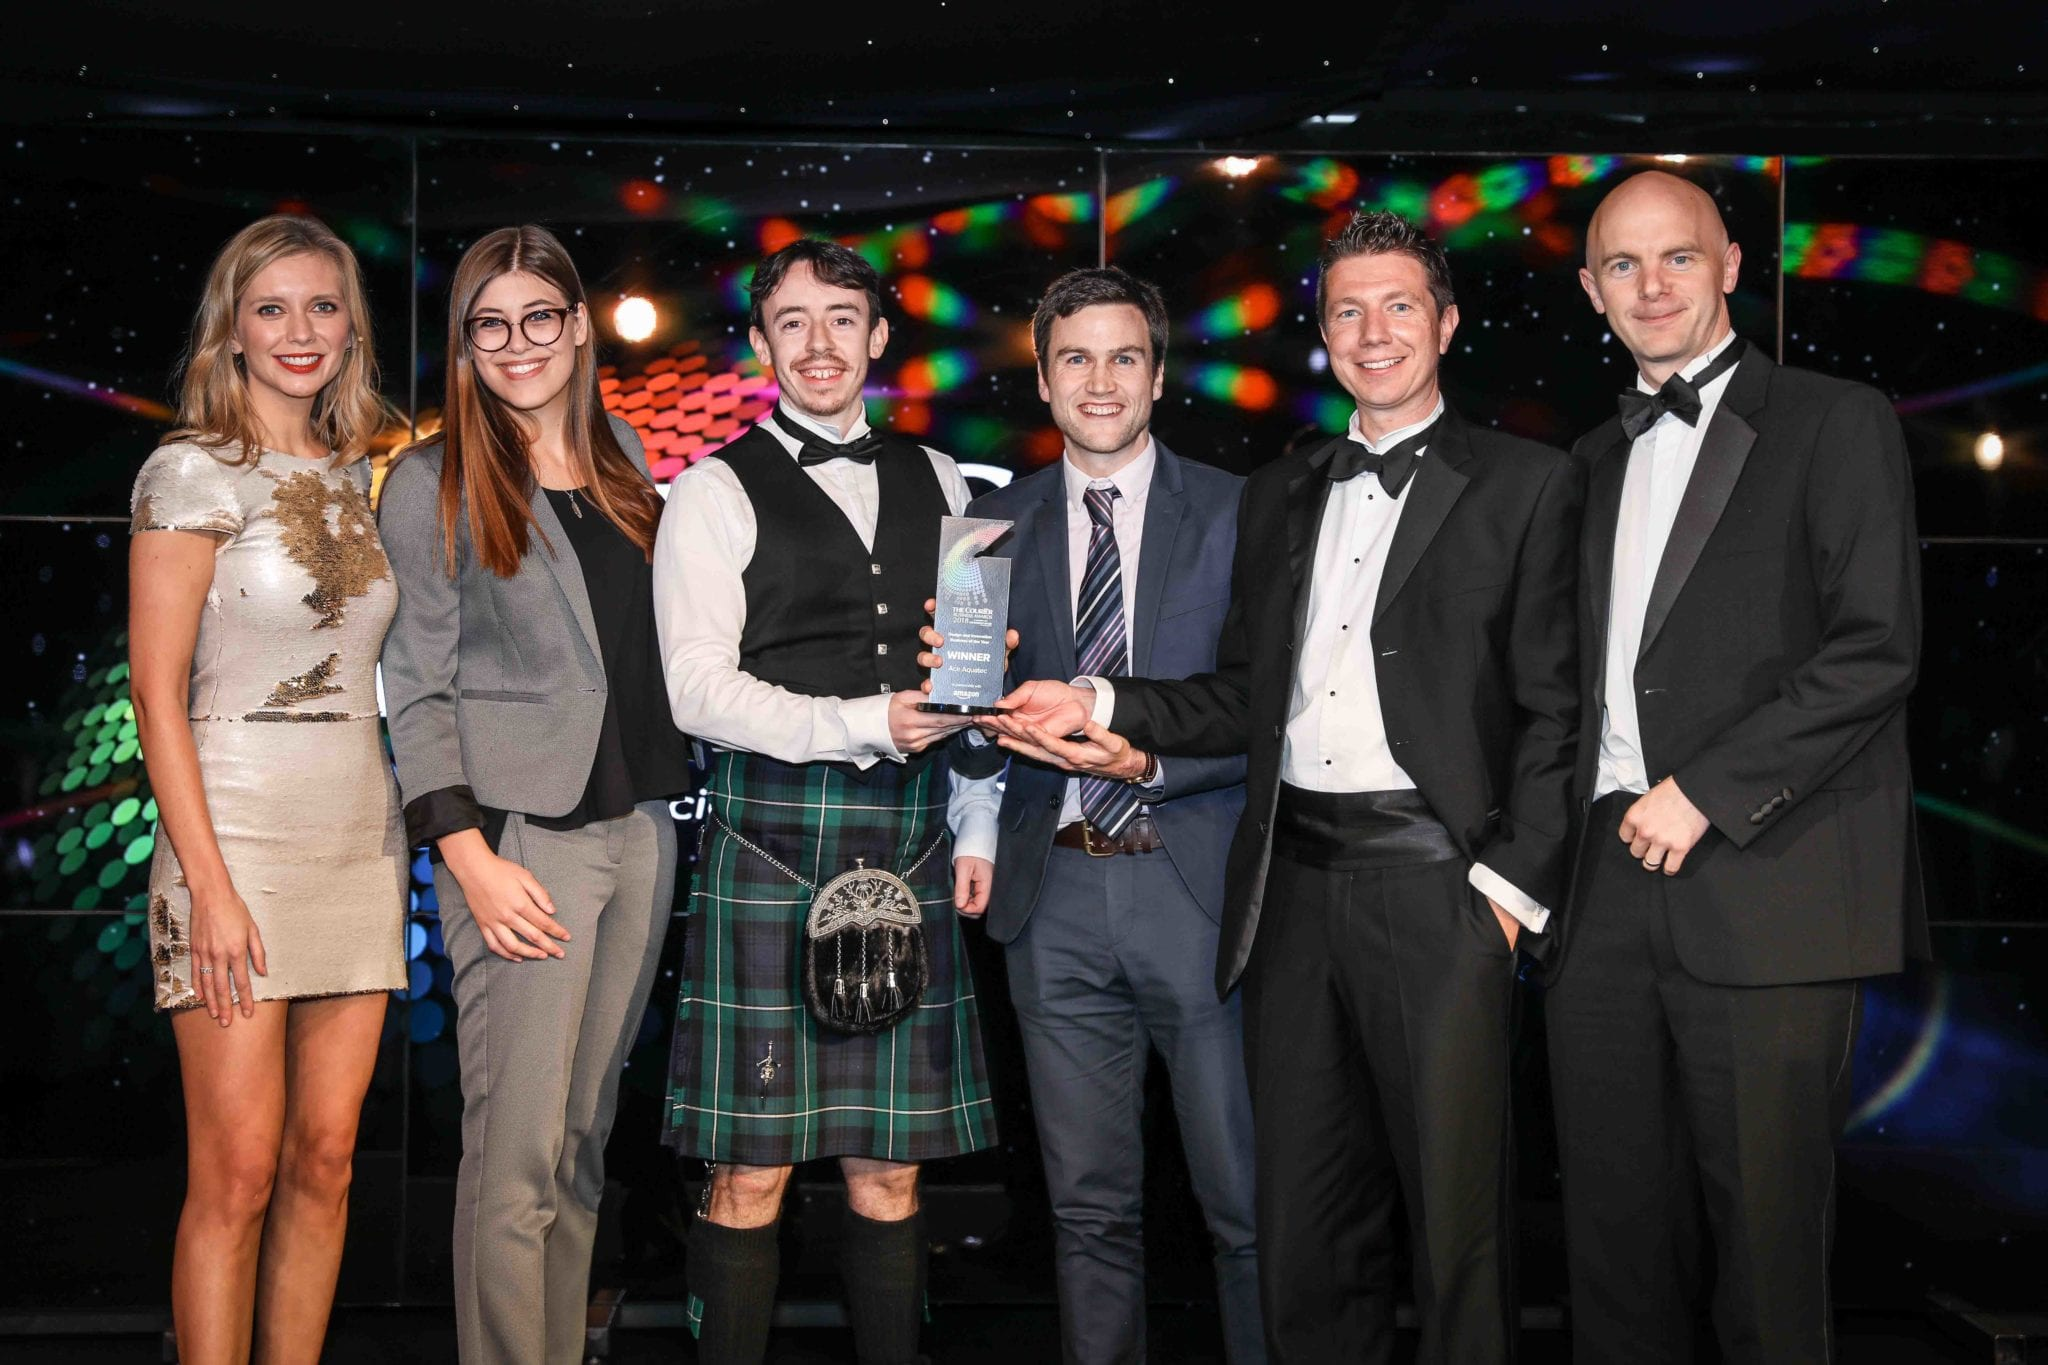 Ace Aquatec wins Design & Innovation Business of the Year